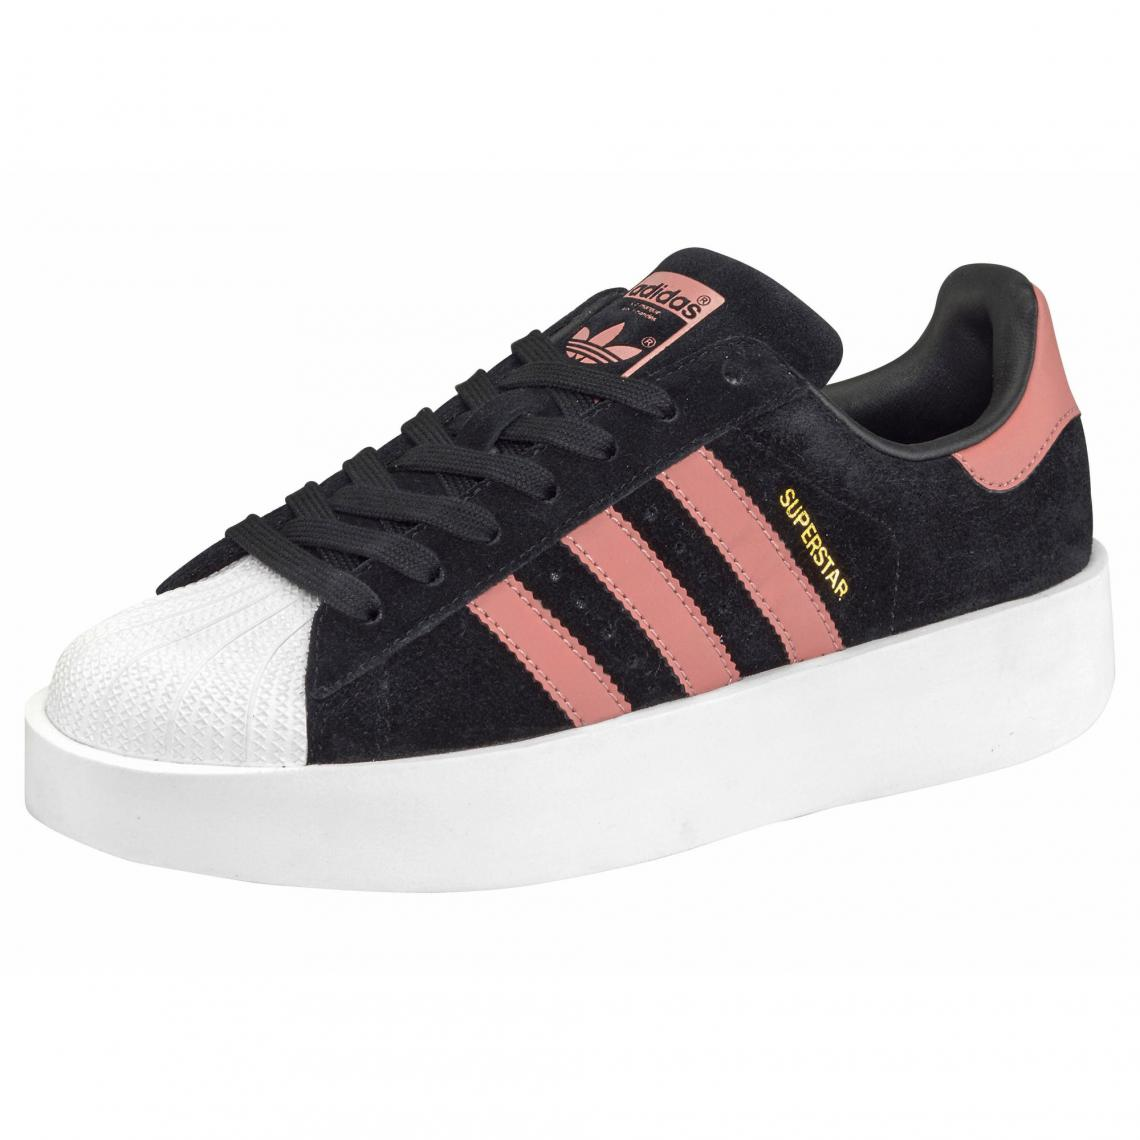 a569844a607c6 adidas Originals Superstar Bold Platform sneakers basses femme - Noir -  Rose Adidas Originals Homme